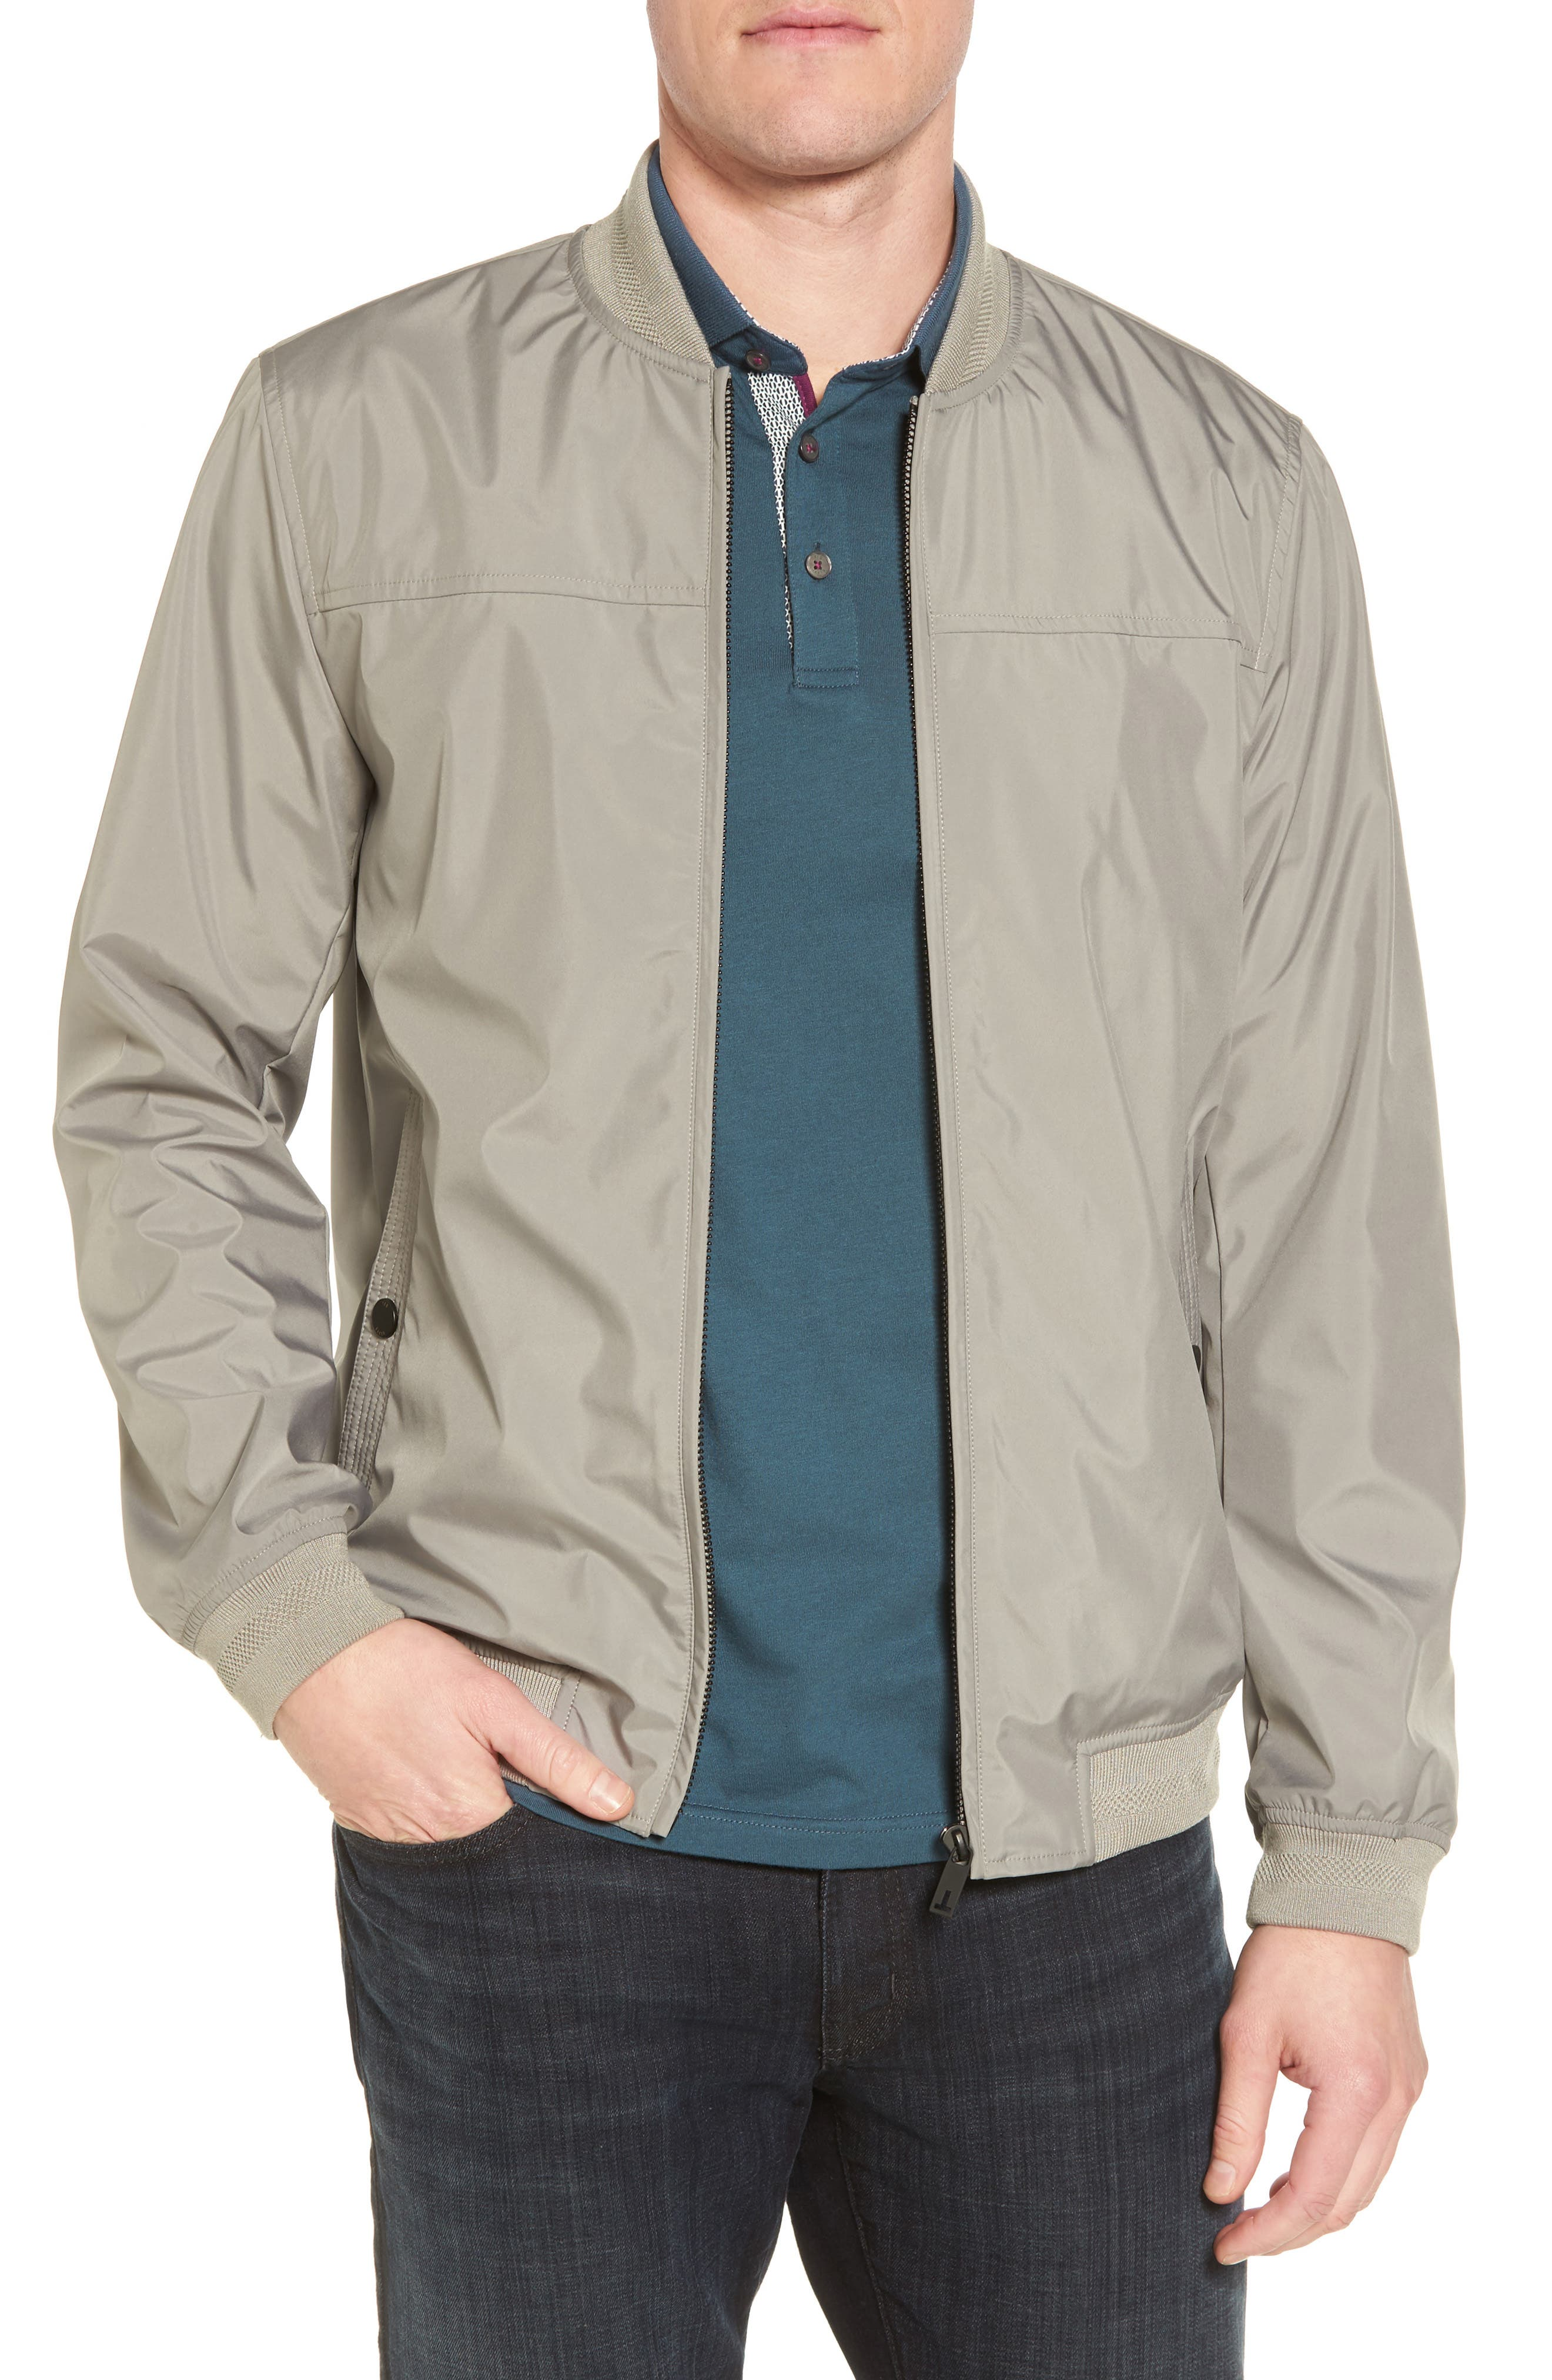 Ohta Bomber Jacket,                         Main,                         color, 030